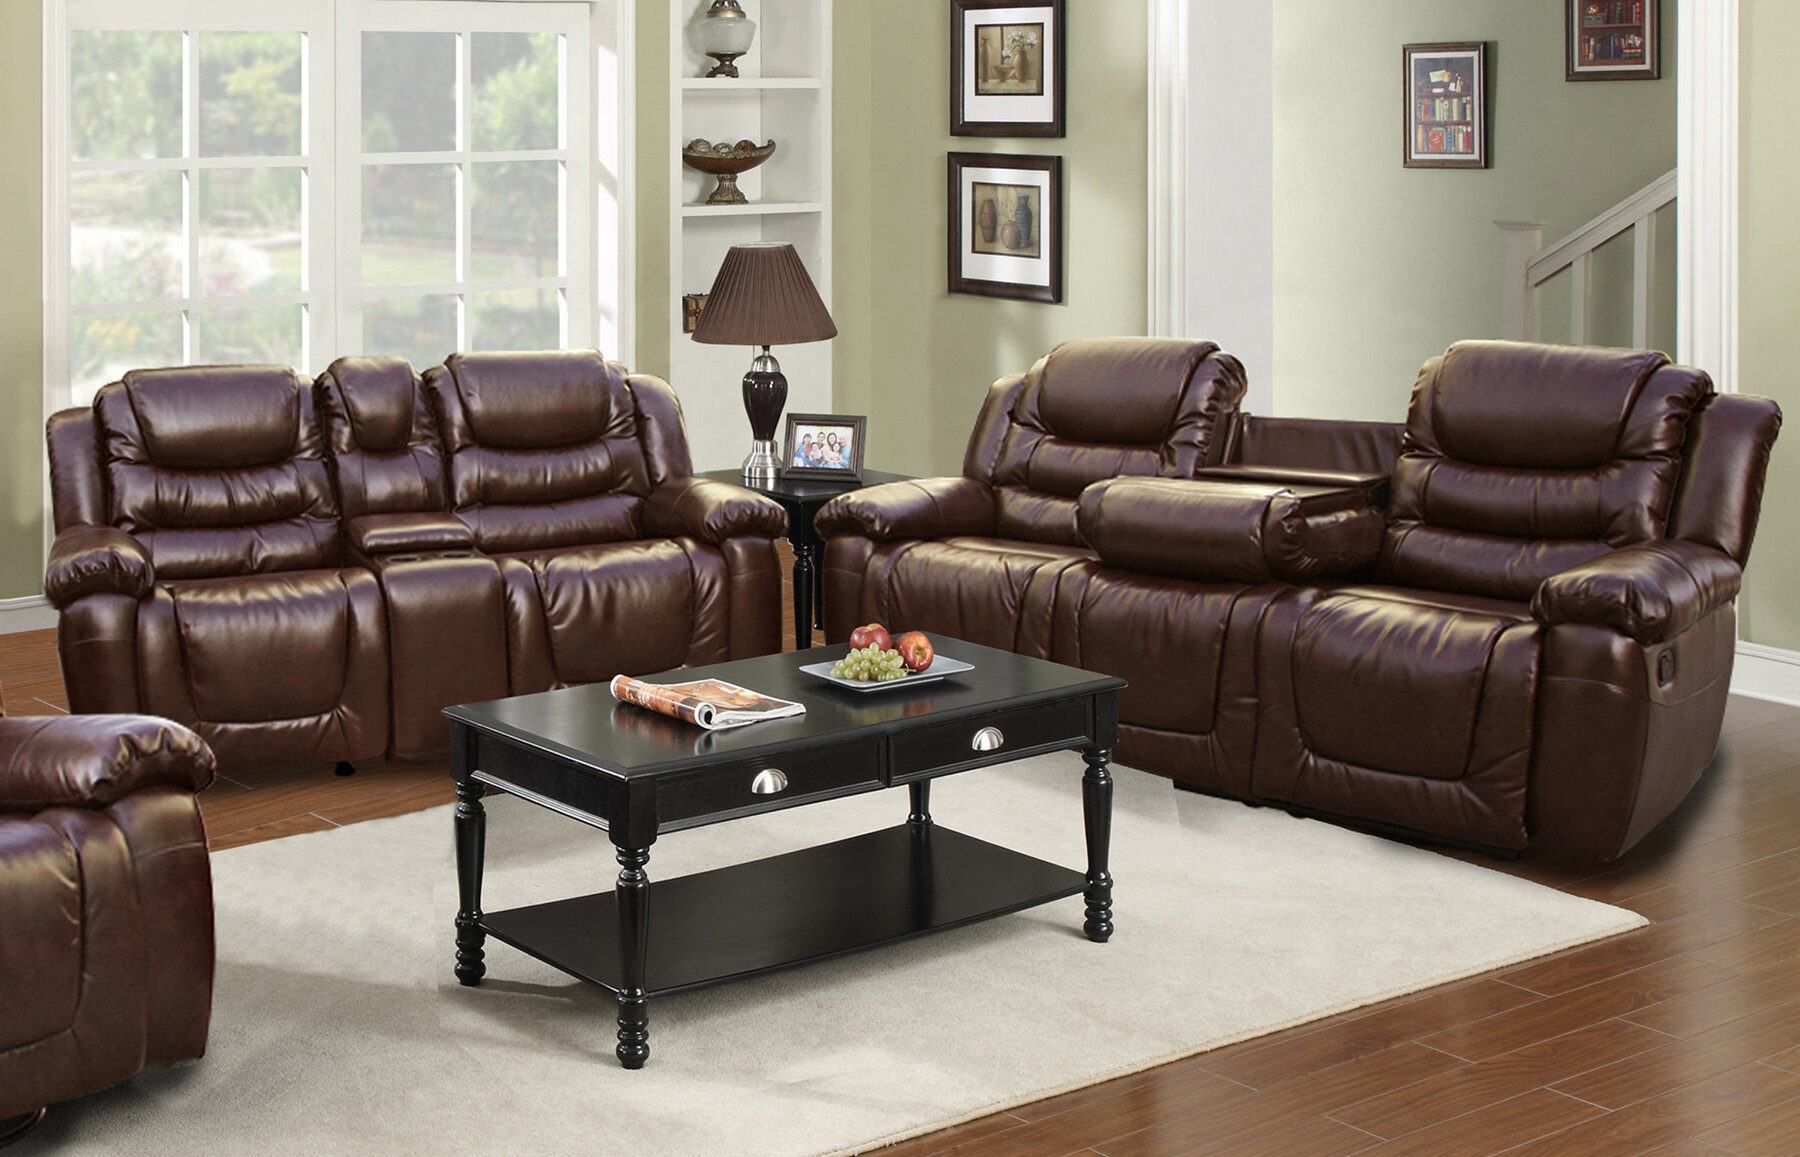 Ottawa 2 piece bonded leather reclining living room sofa for 8 piece living room furniture set